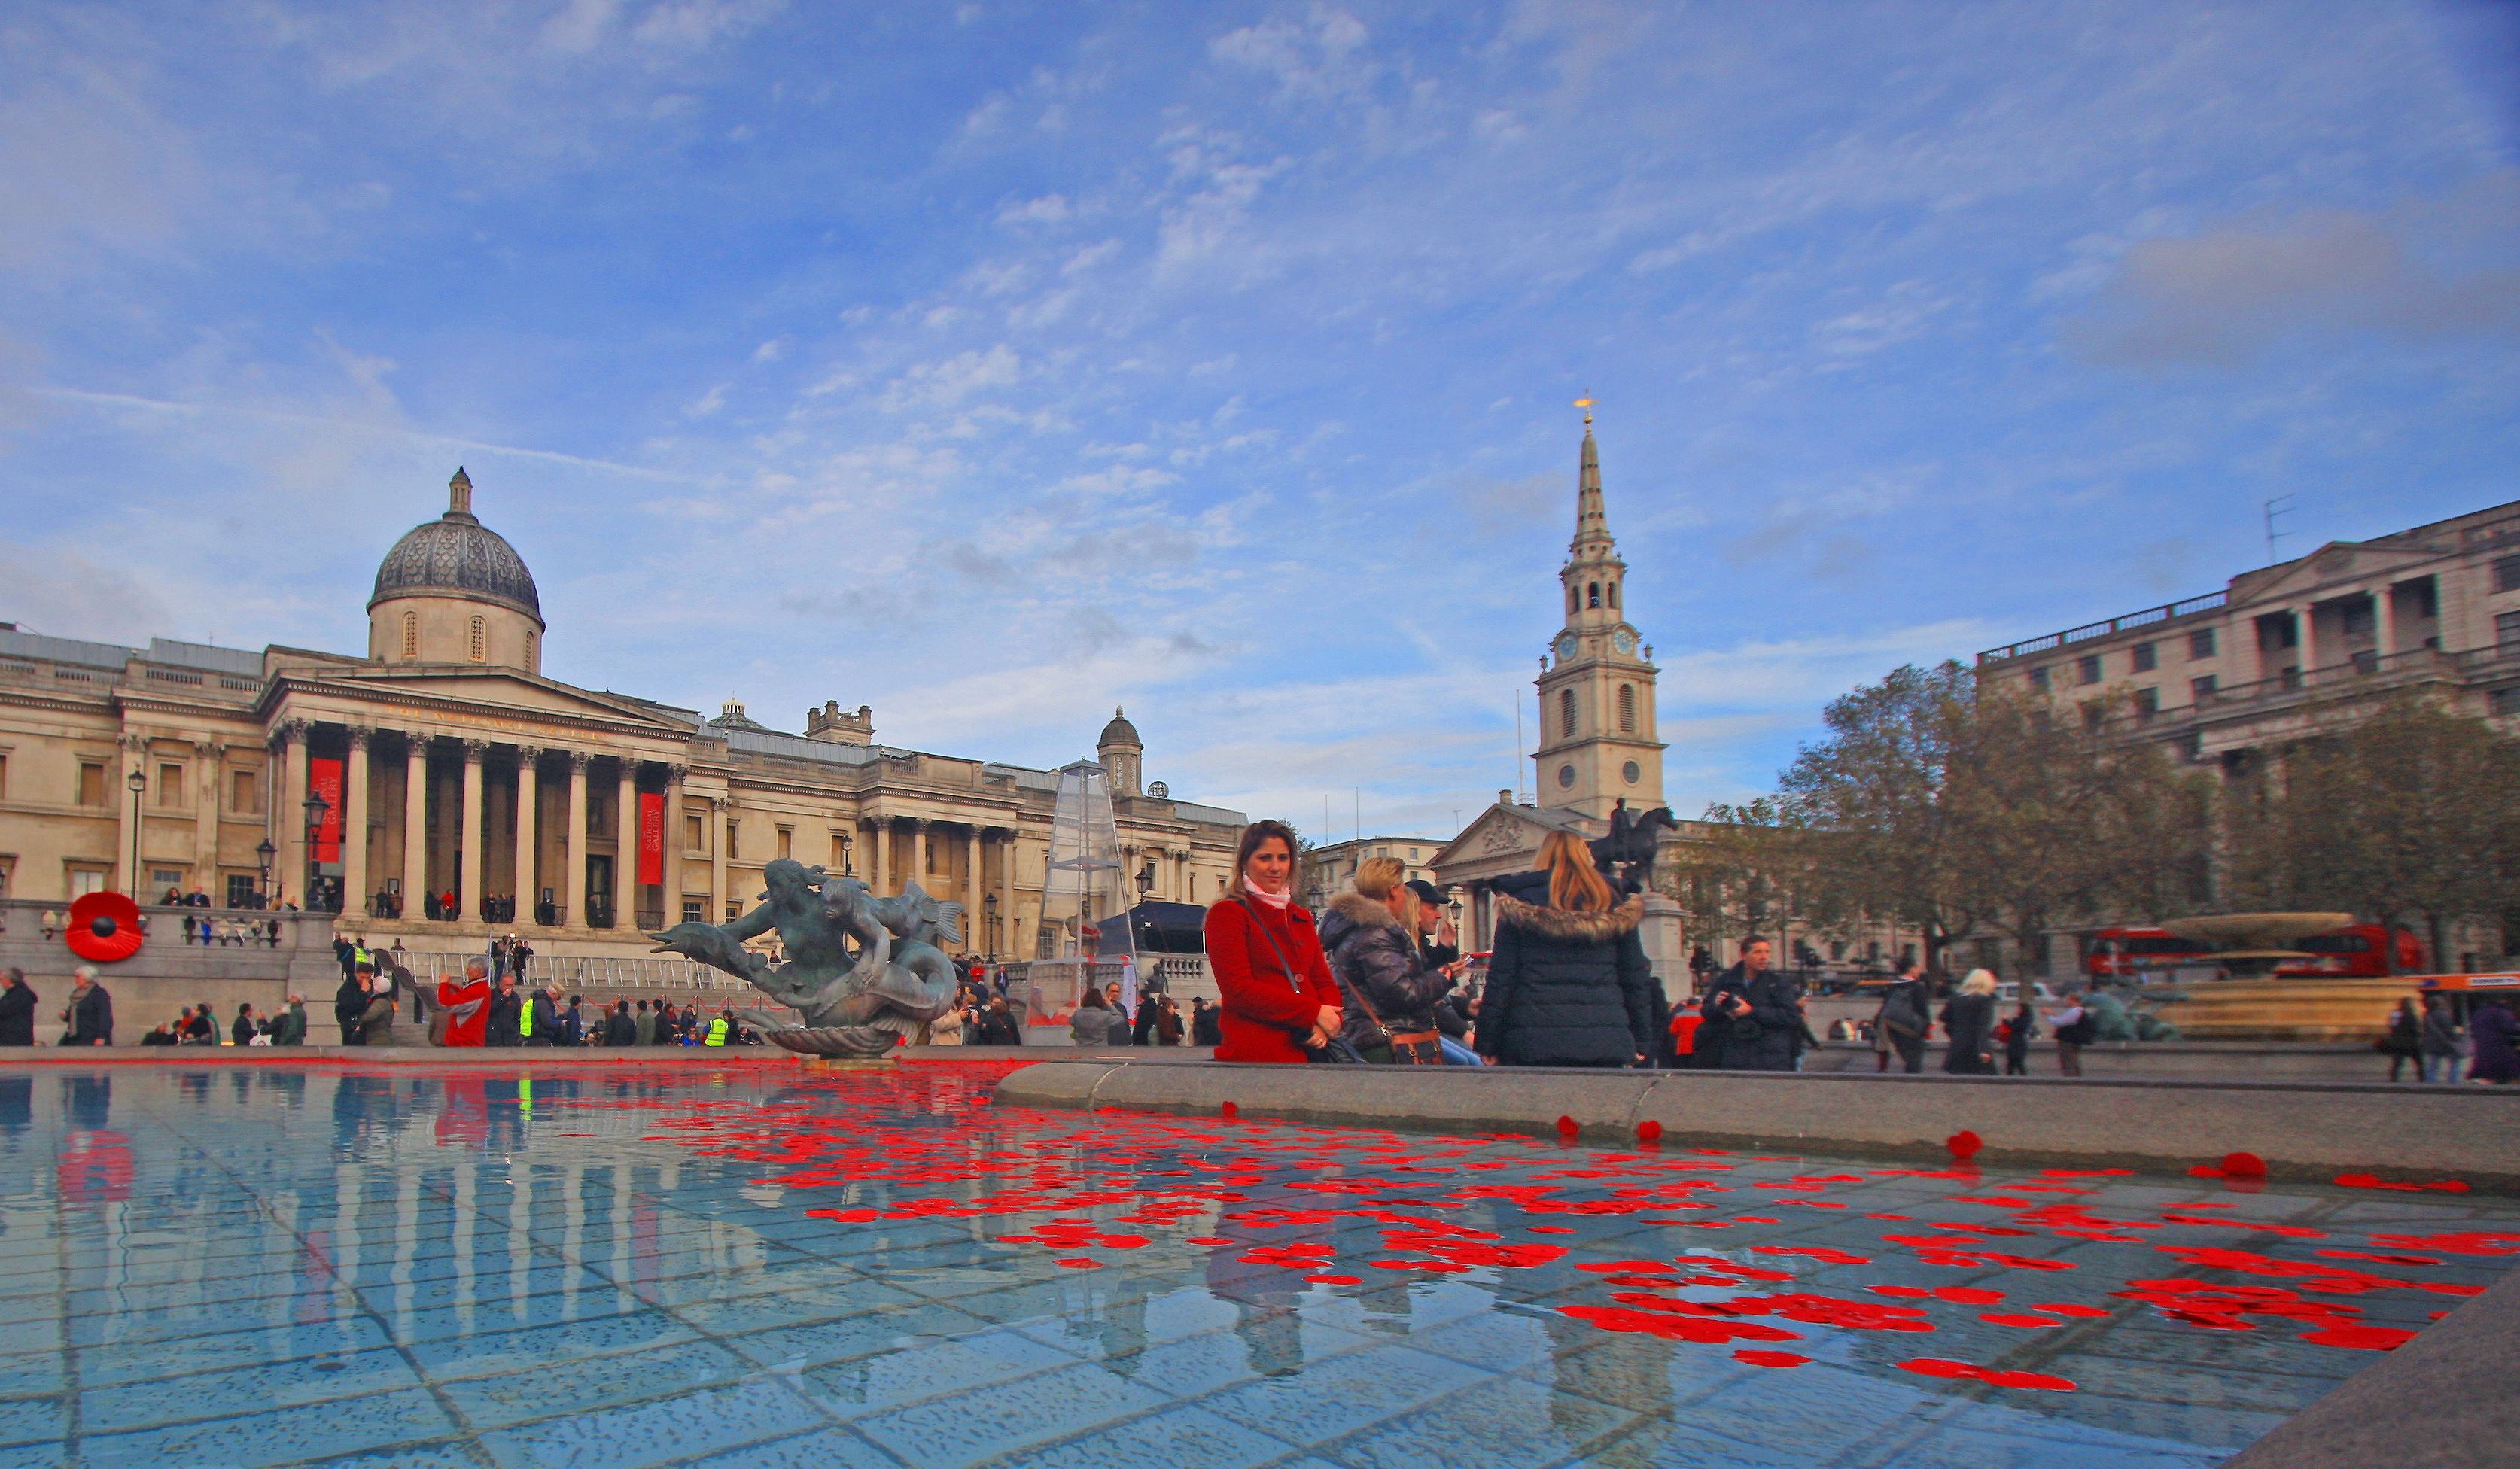 TRAFALGAR SQUARE MOURNS THE GREAT WAR by John Cano-Lopez.jpg